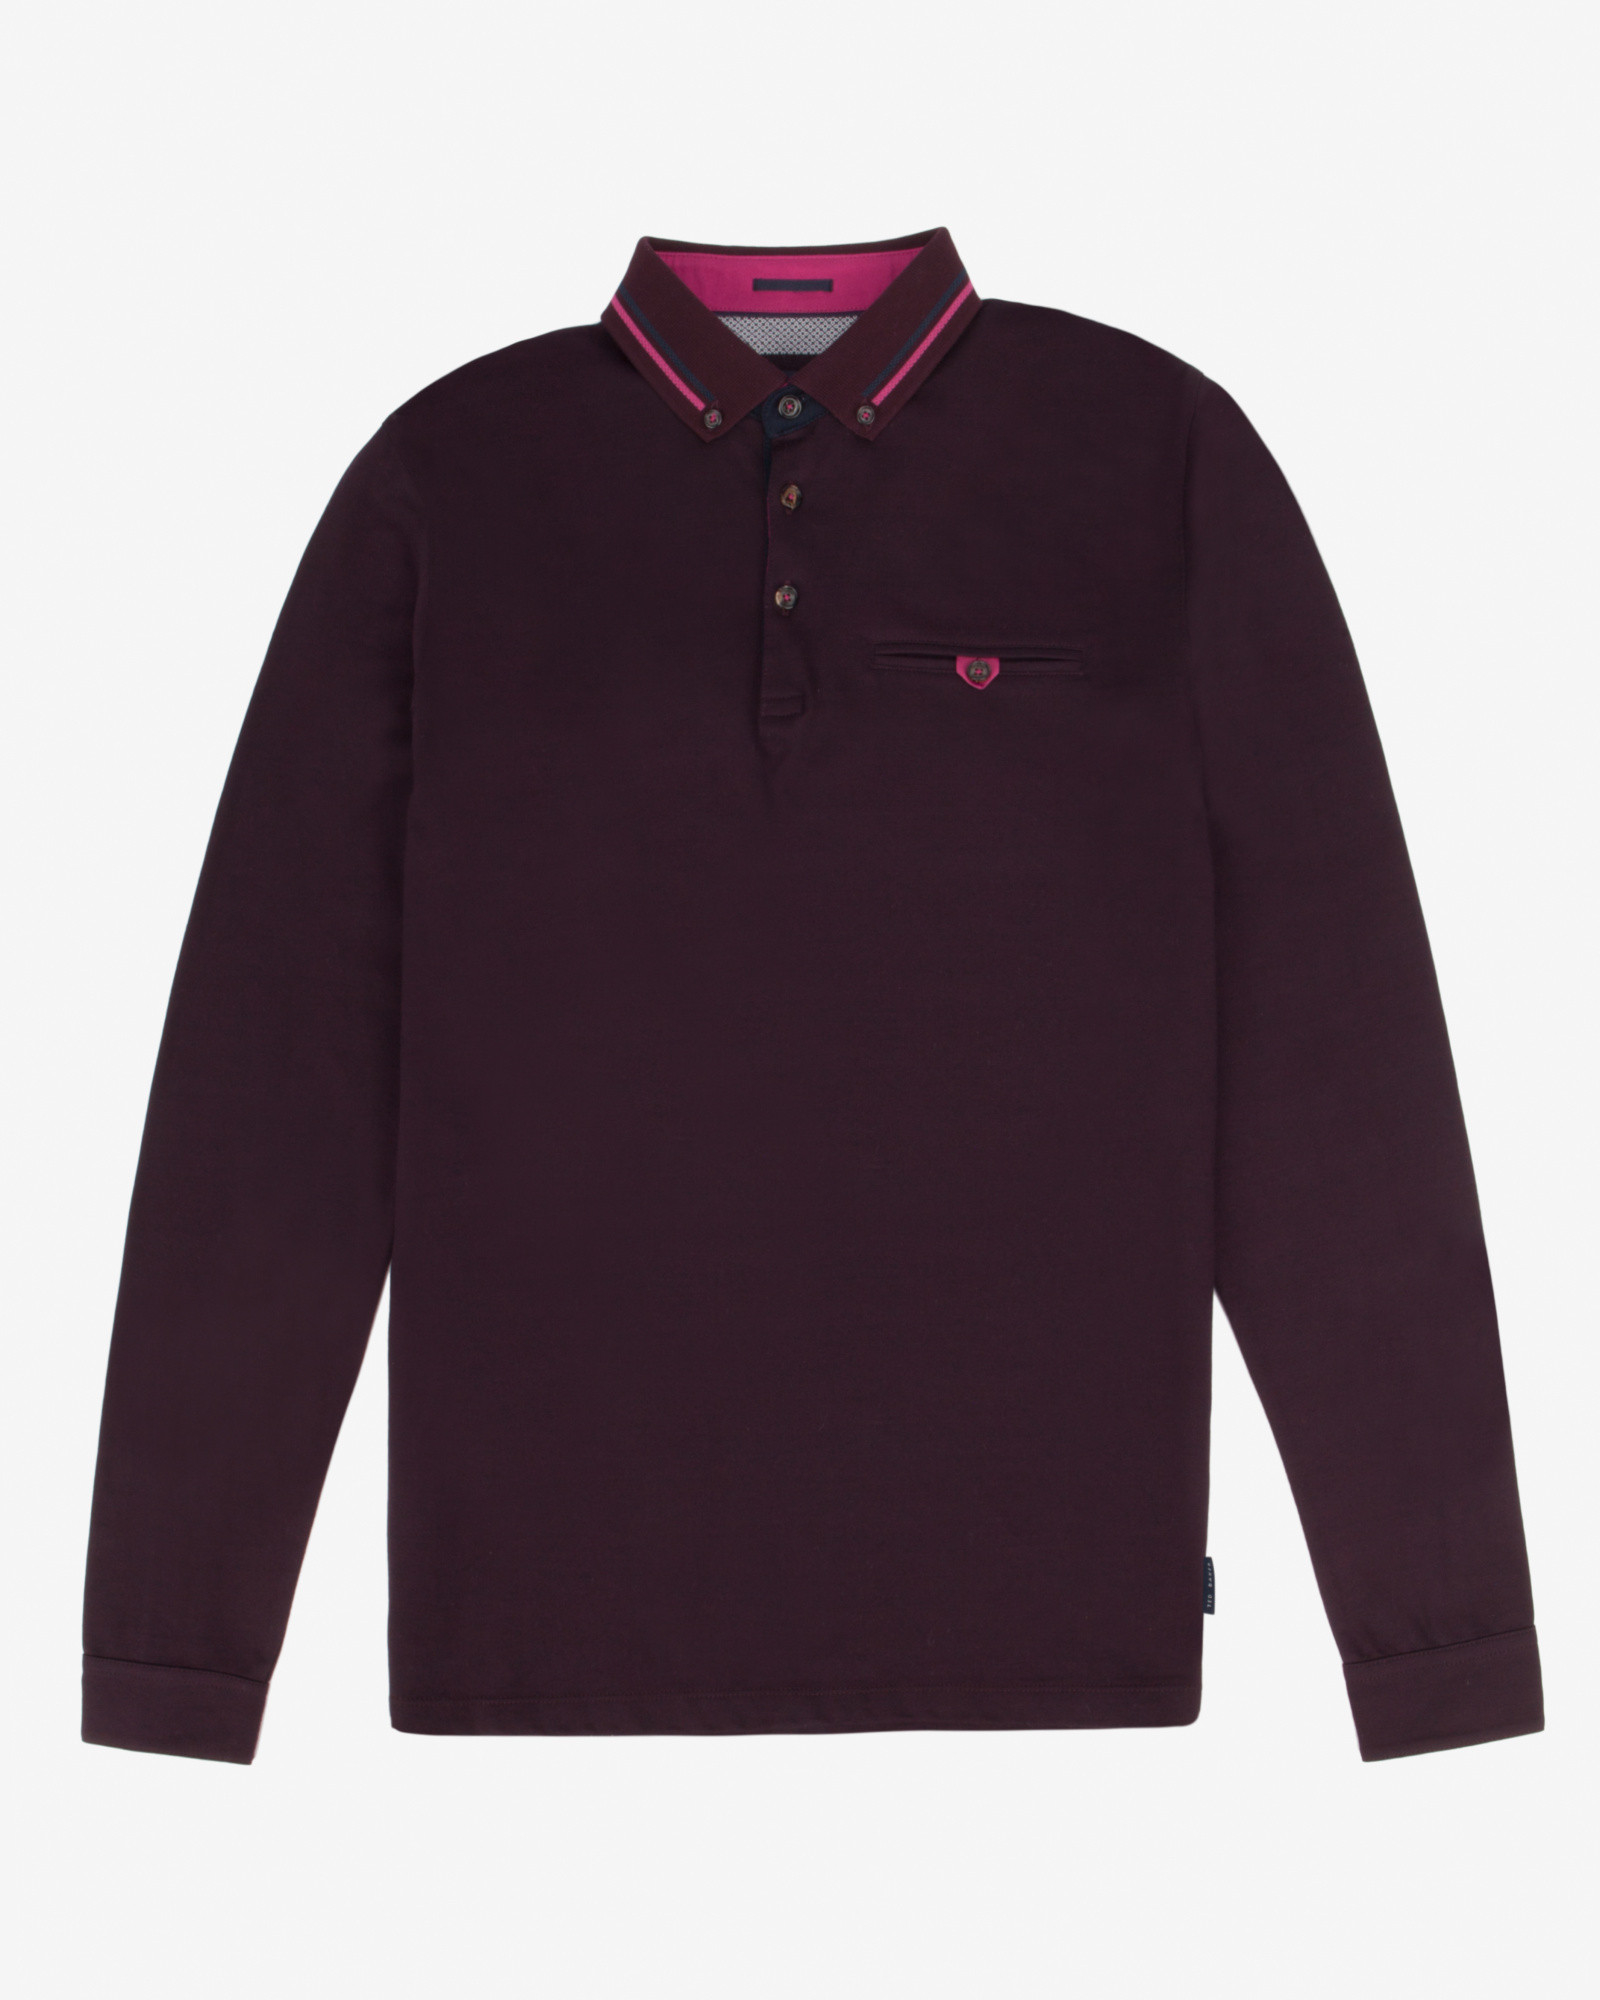 Ted baker long sleeved polo shirt in purple for men dark red for Long sleeve purple polo shirt